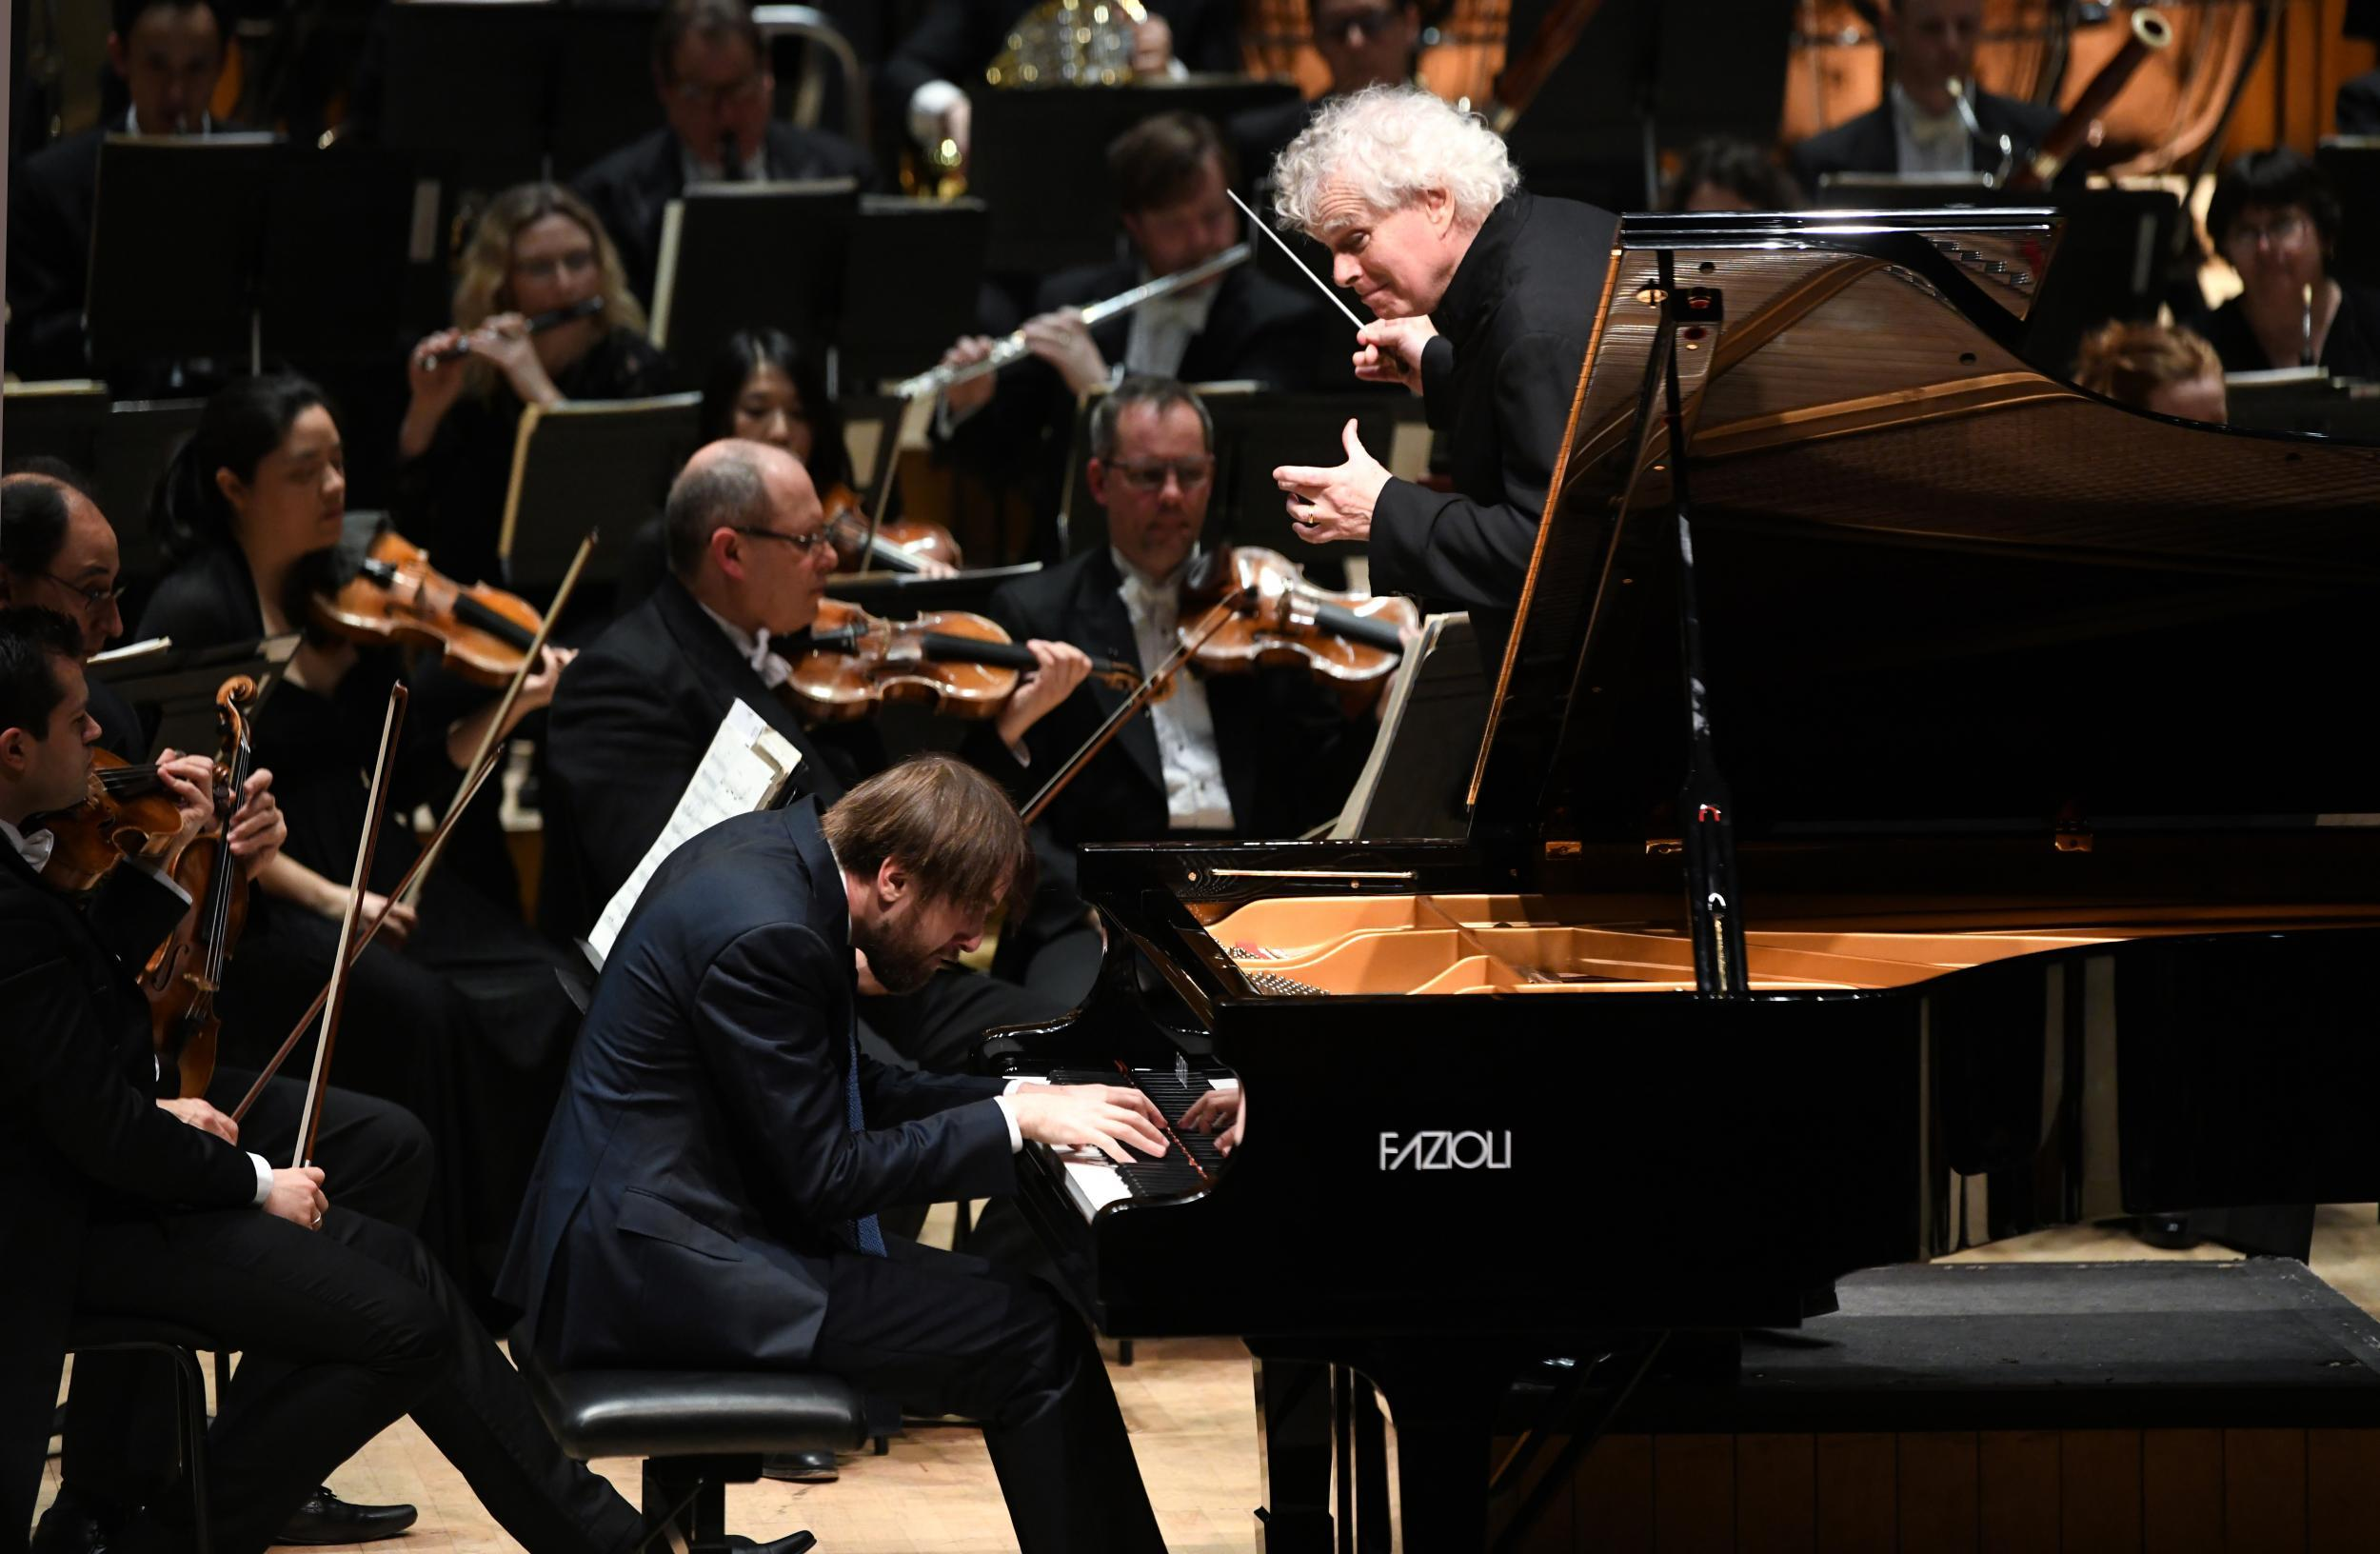 Daniil Trifonov at the Barbican, London, review: Pianist carries Simon Rattle and LSO into exuberant overdrive